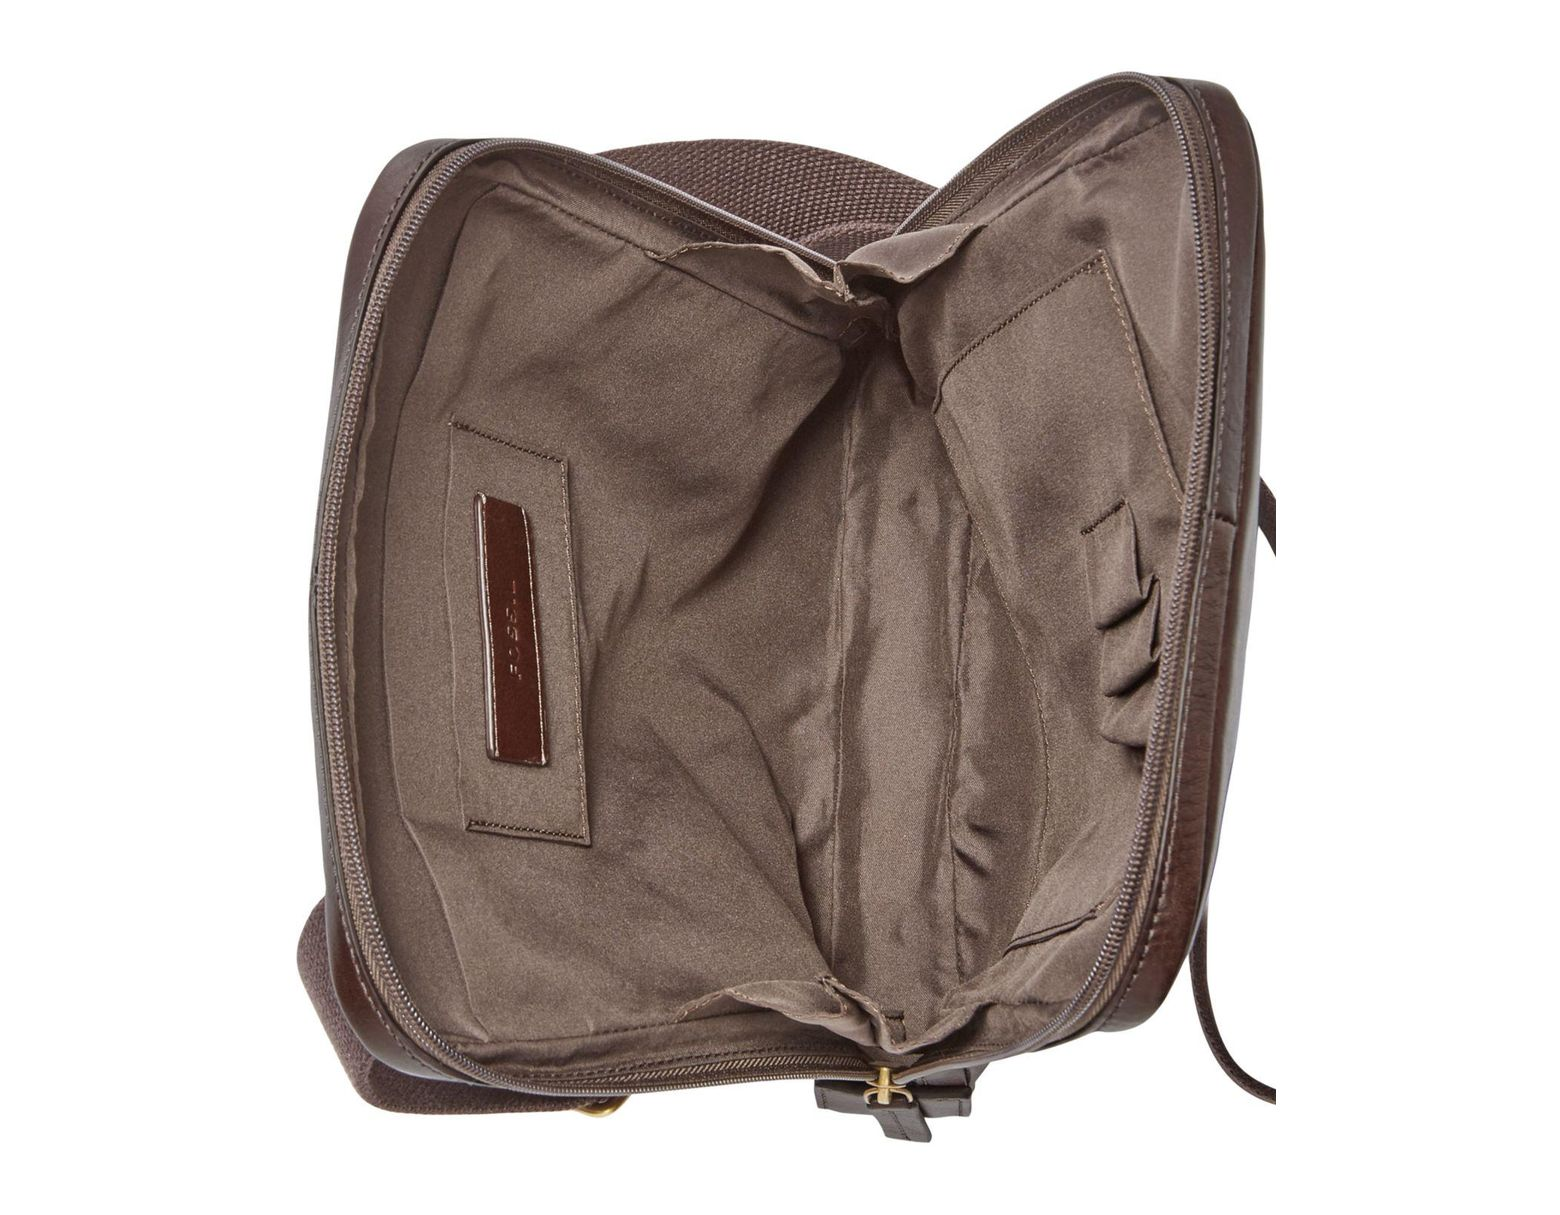 911be609ba4d11 Fossil Haskel Leather Courier Case in Brown for Men - Lyst